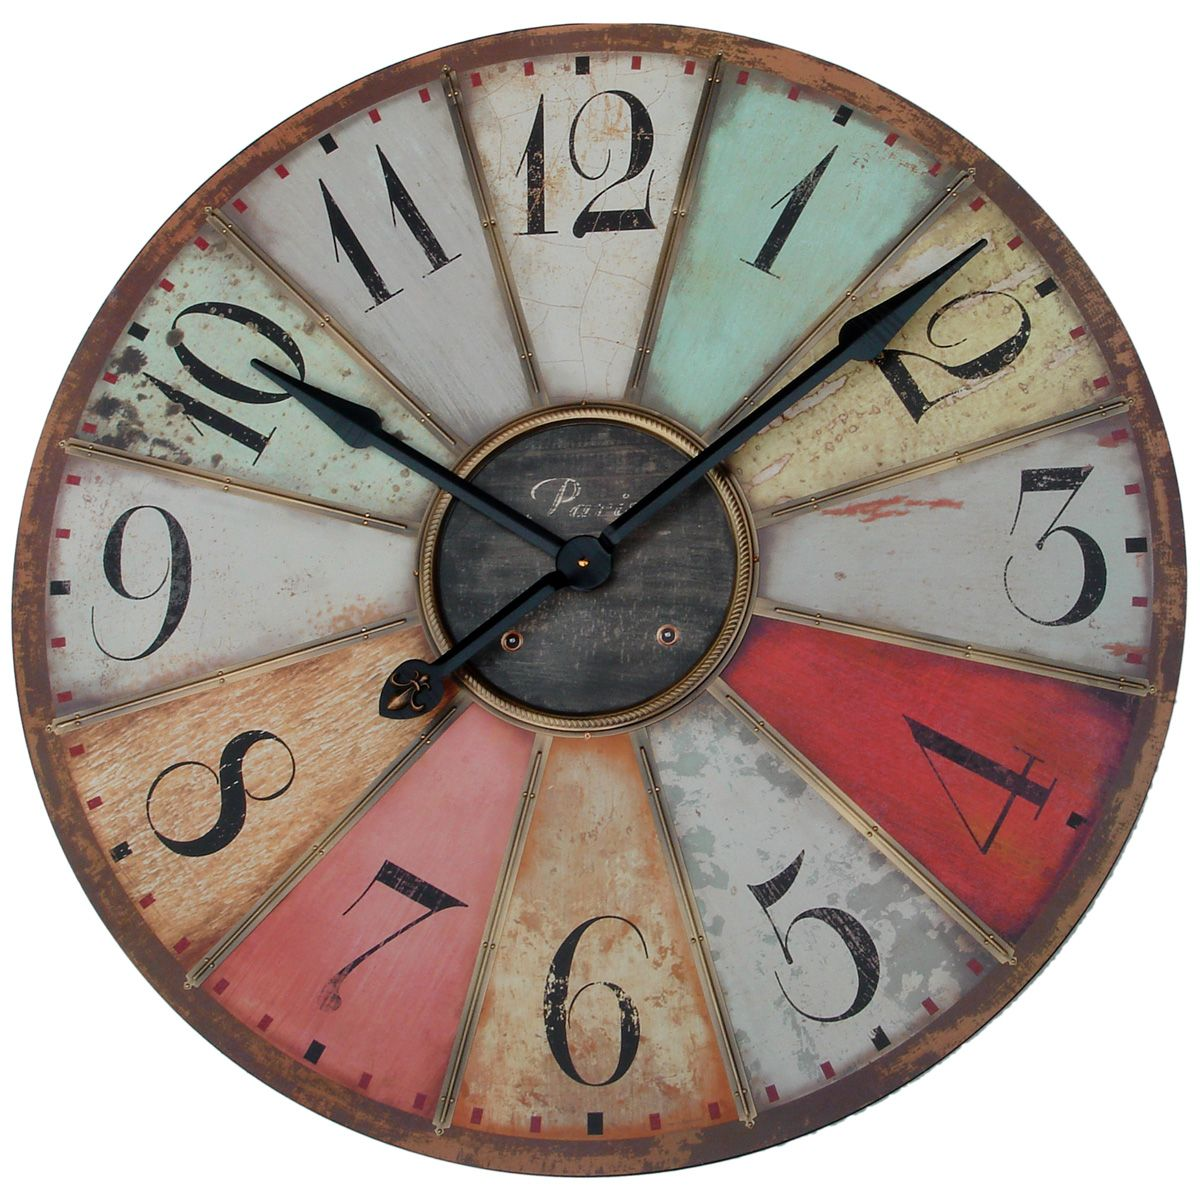 Vintage clock images google search diy secret pinterest big vintage wall clock for office amipublicfo Images